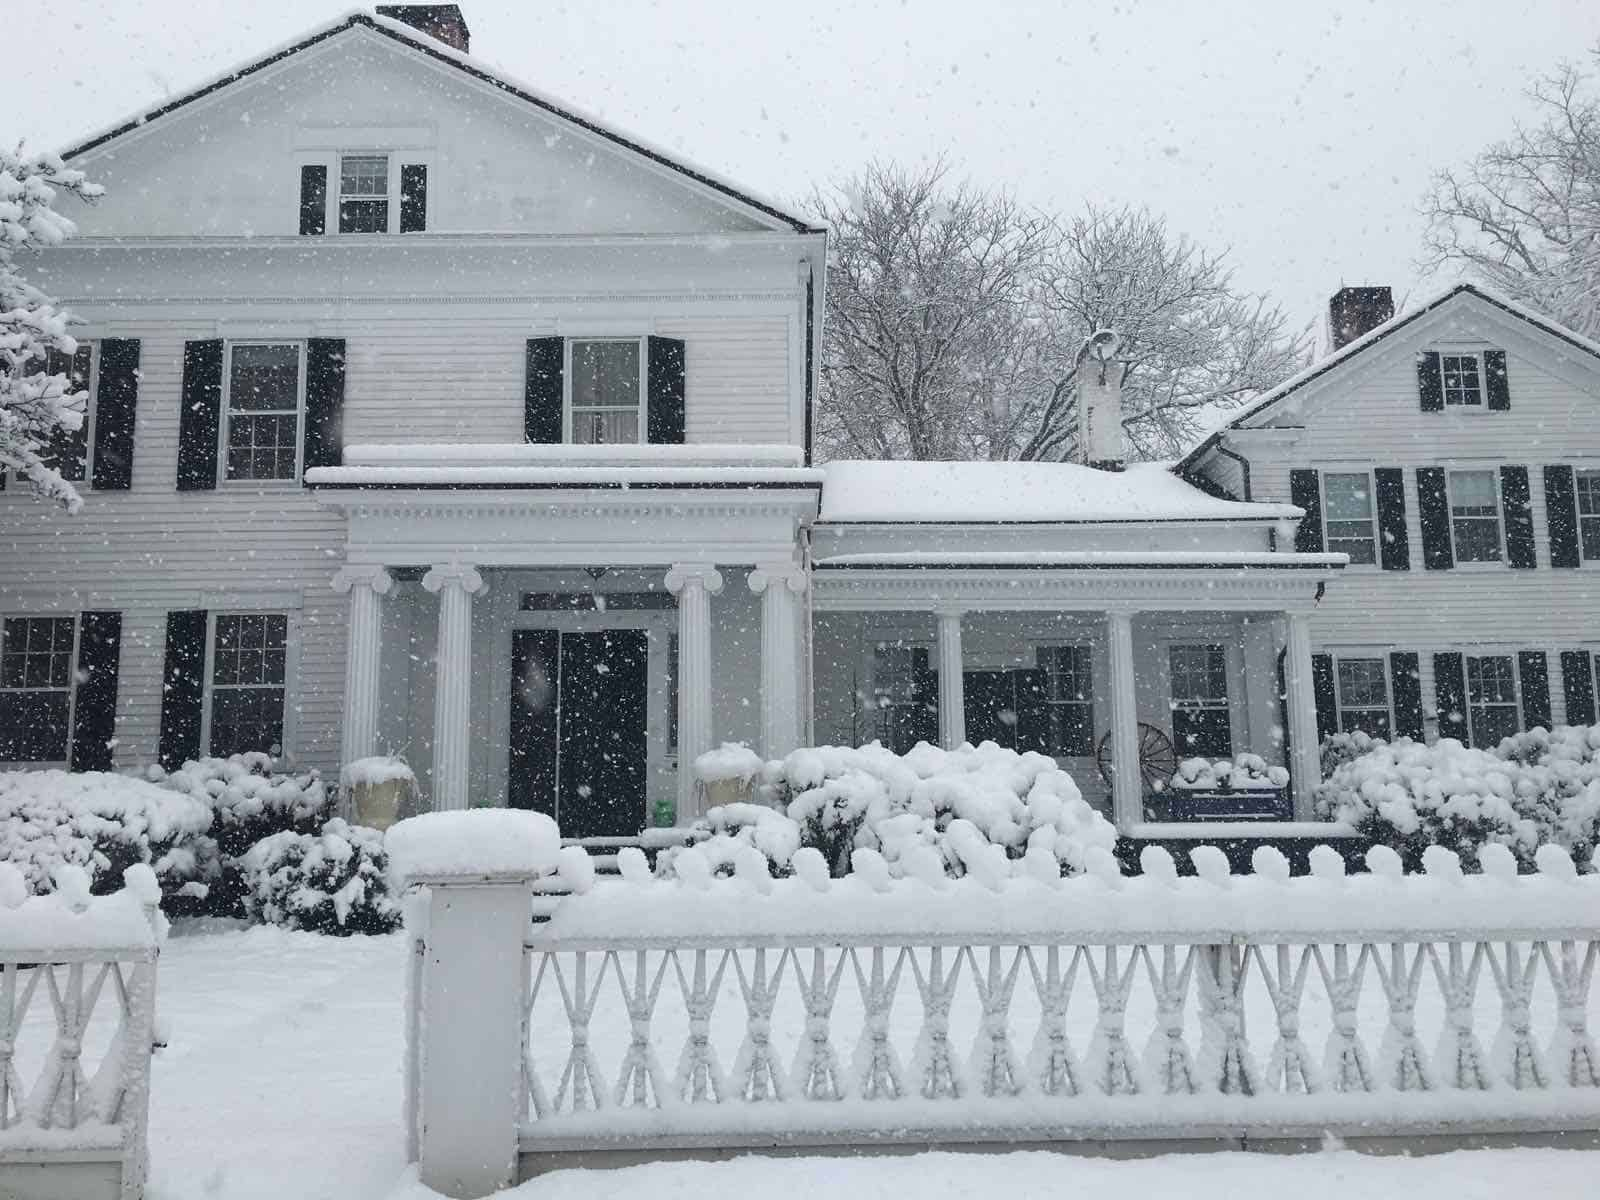 exterior of house in snow storm